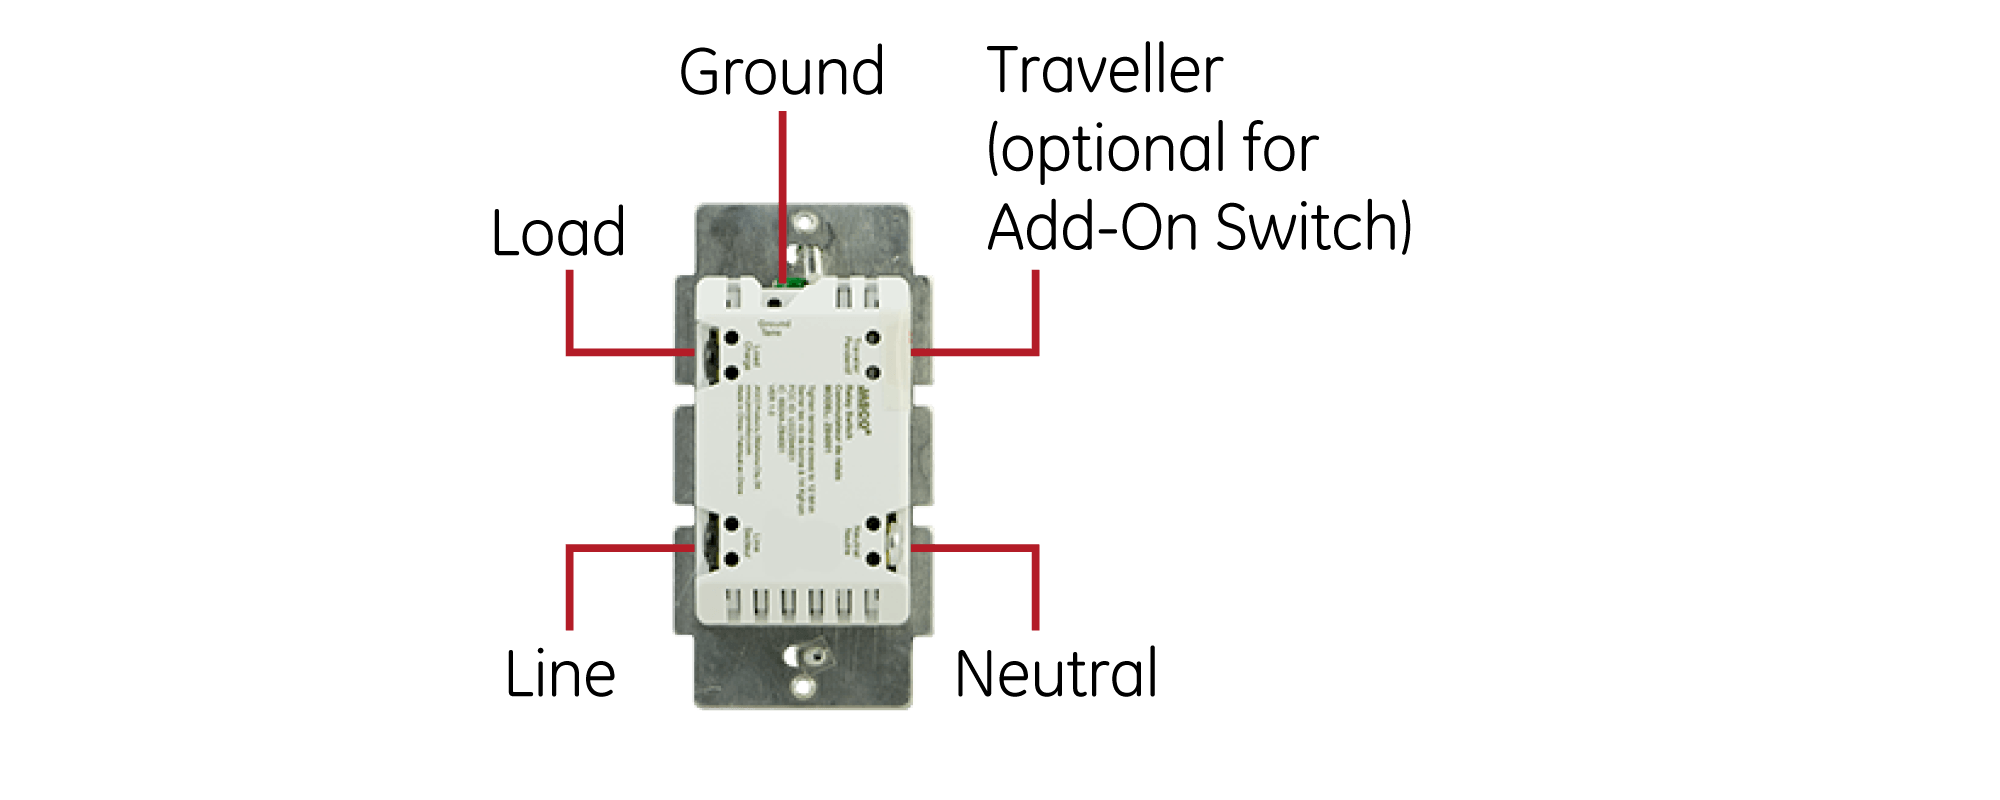 wiring diagram for home automation phone socket jasco zigbee in wall smart dimmer switch